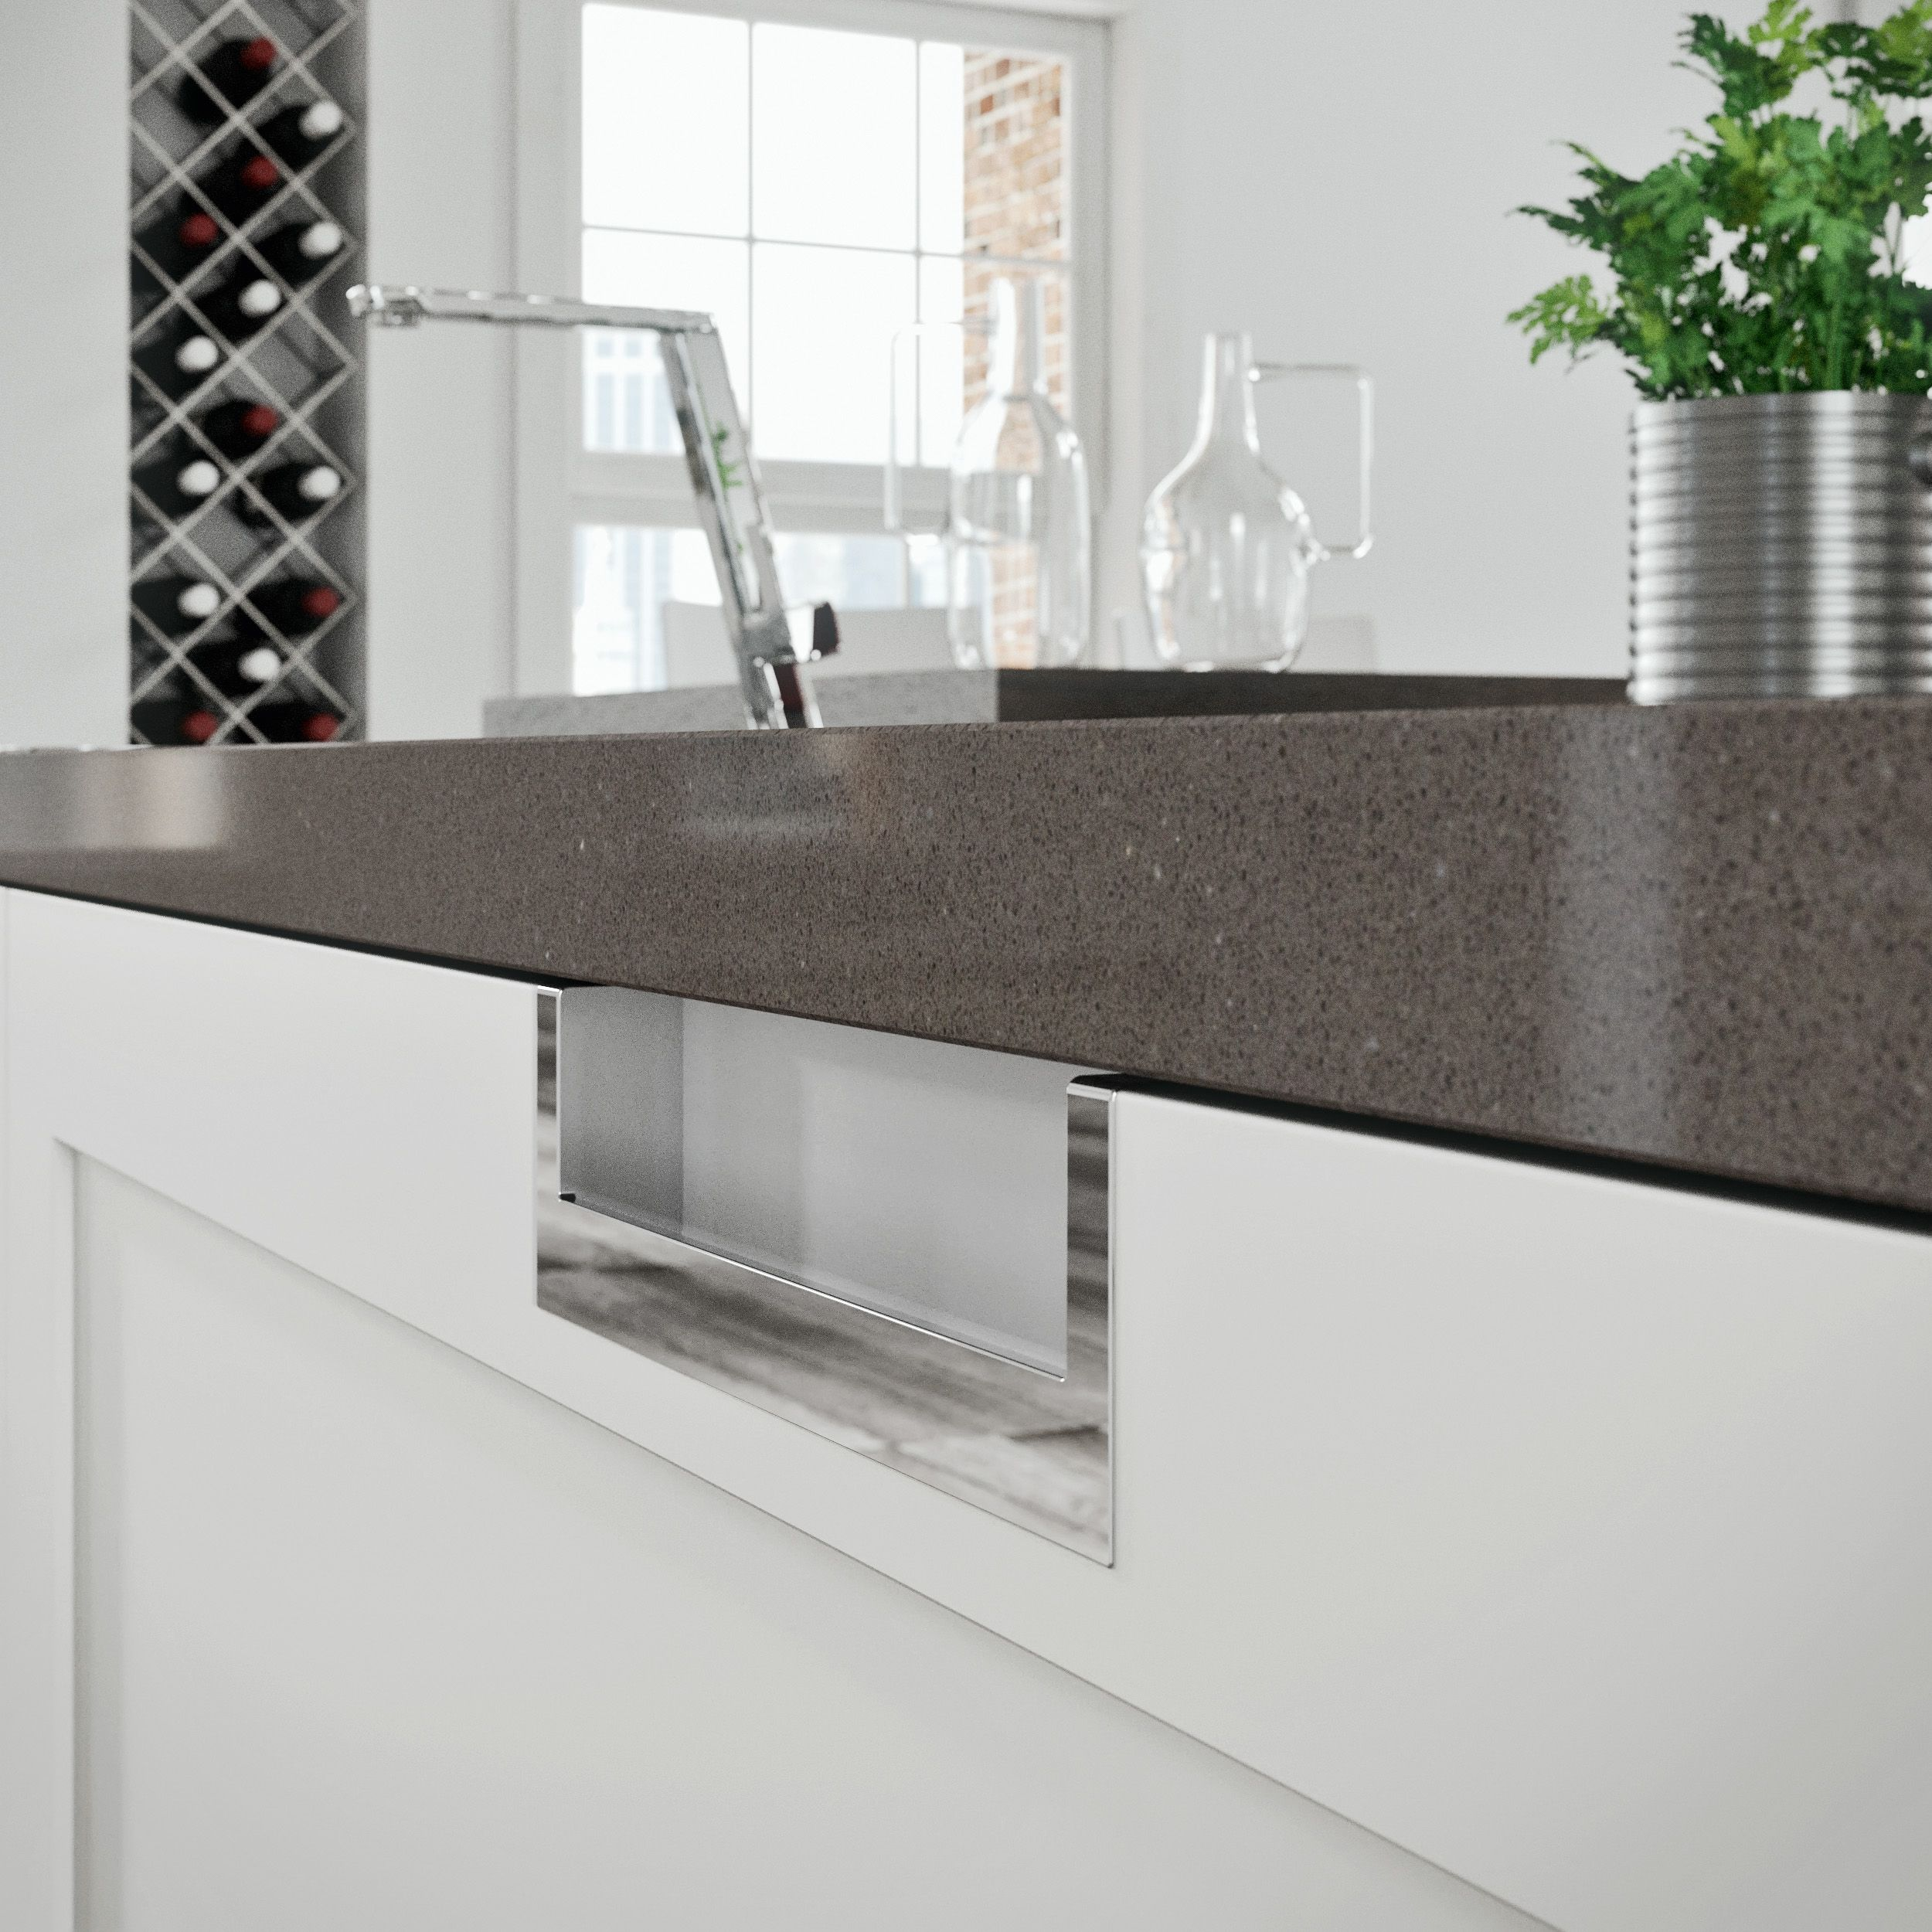 Snaidero Lux Kitchen Cabinet Handle Is Considered A Non Handle Handle Recessed Under The Counter Modern Kitchen Handles Modern Kitchen Modern Kitchen Design